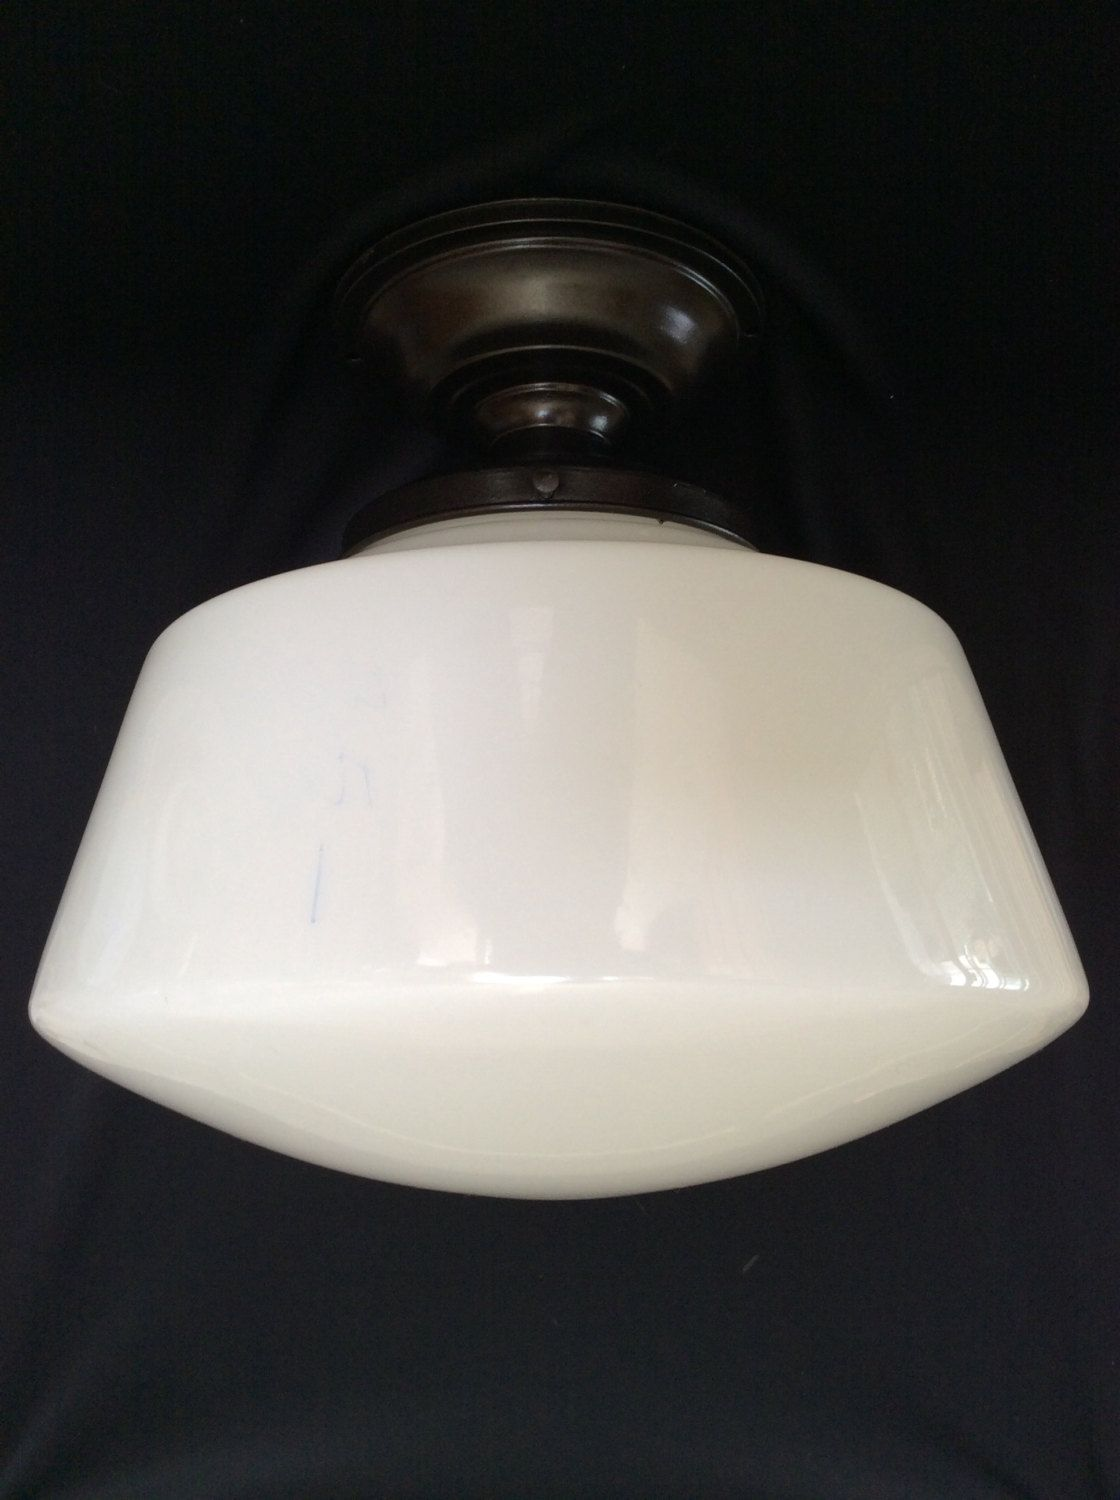 Vintage large school house industrial ceiling light fixtures vintage large school house industrial ceiling light fixtures milkglass 1920s 1 of 2 arubaitofo Gallery